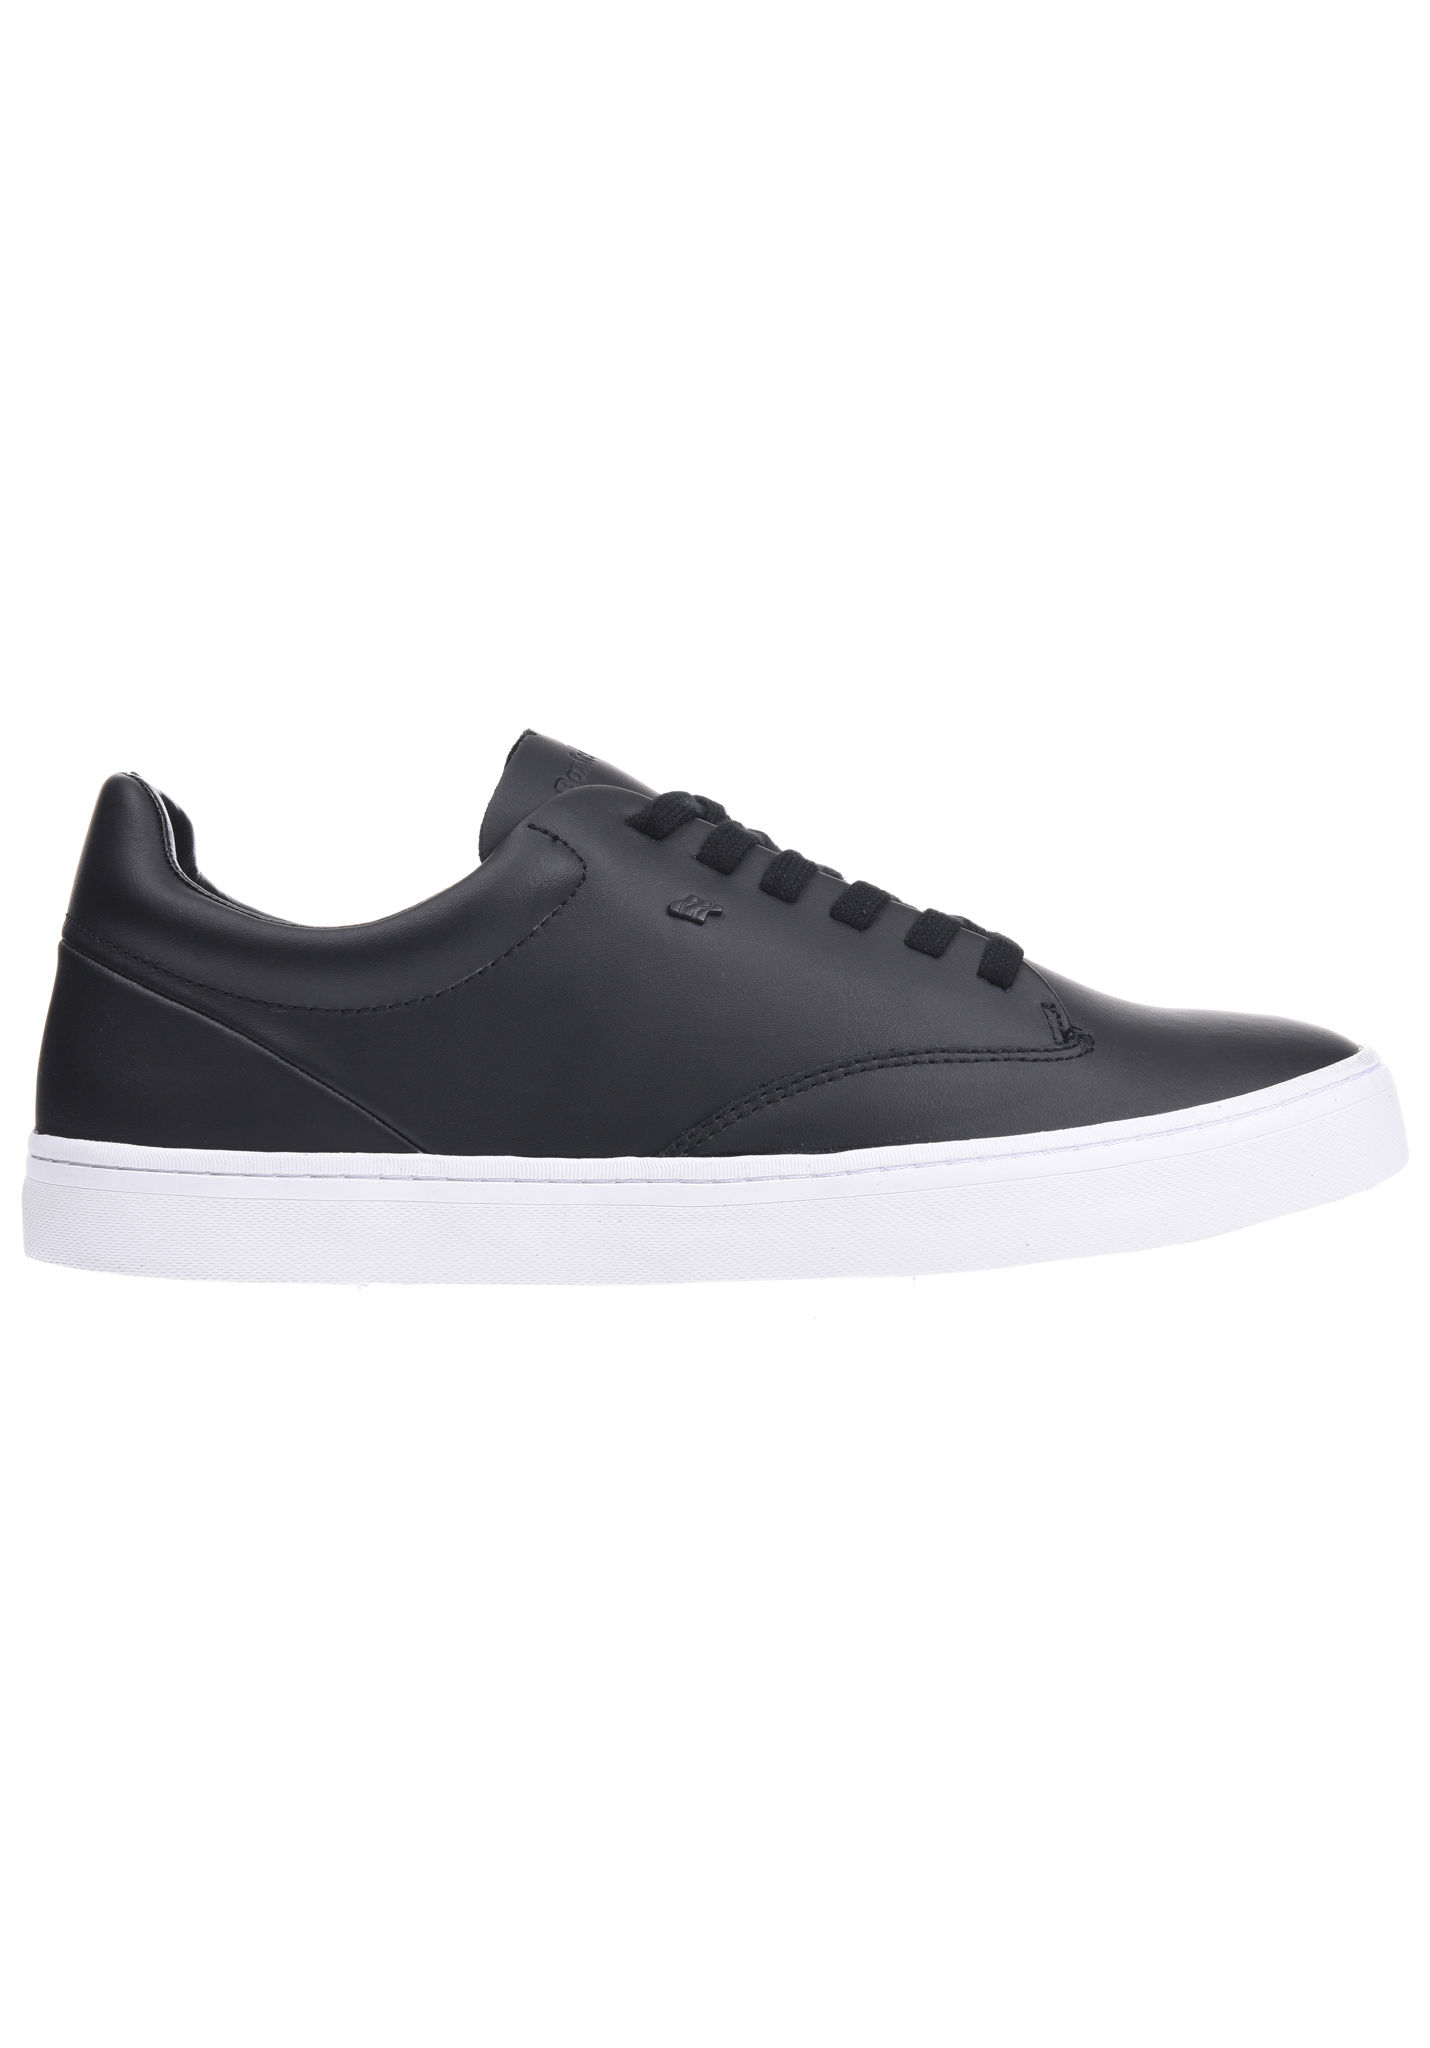 half off c7b98 39e66 boxfresh-esb-sh-lthr-sneakers-men-black.jpg